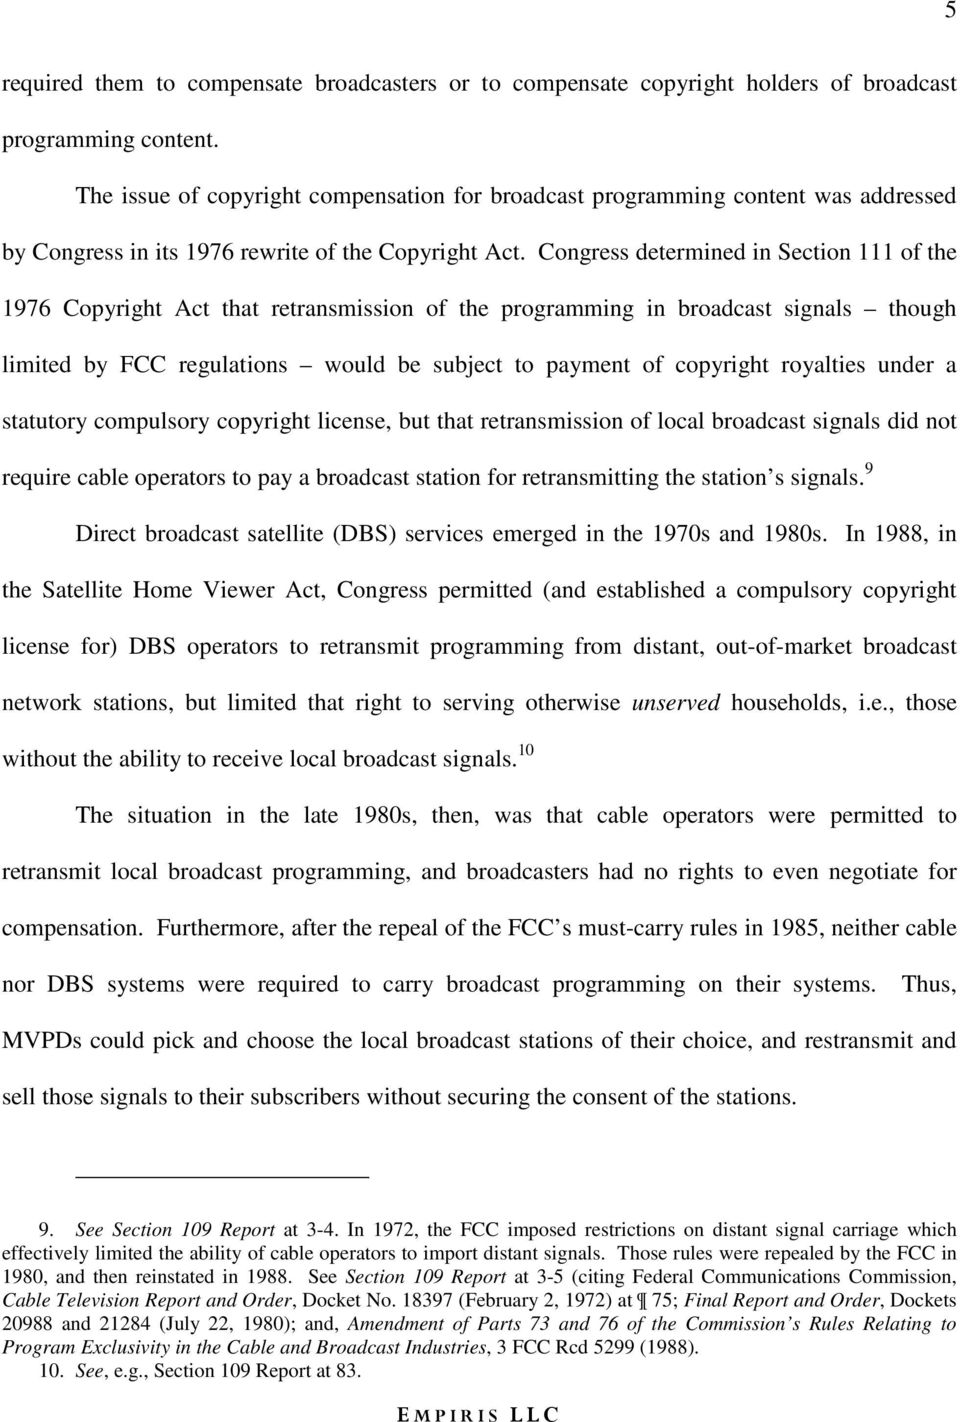 Congress determined in Section 111 of the 1976 Copyright Act that retransmission of the programming in broadcast signals though limited by FCC regulations would be subject to payment of copyright